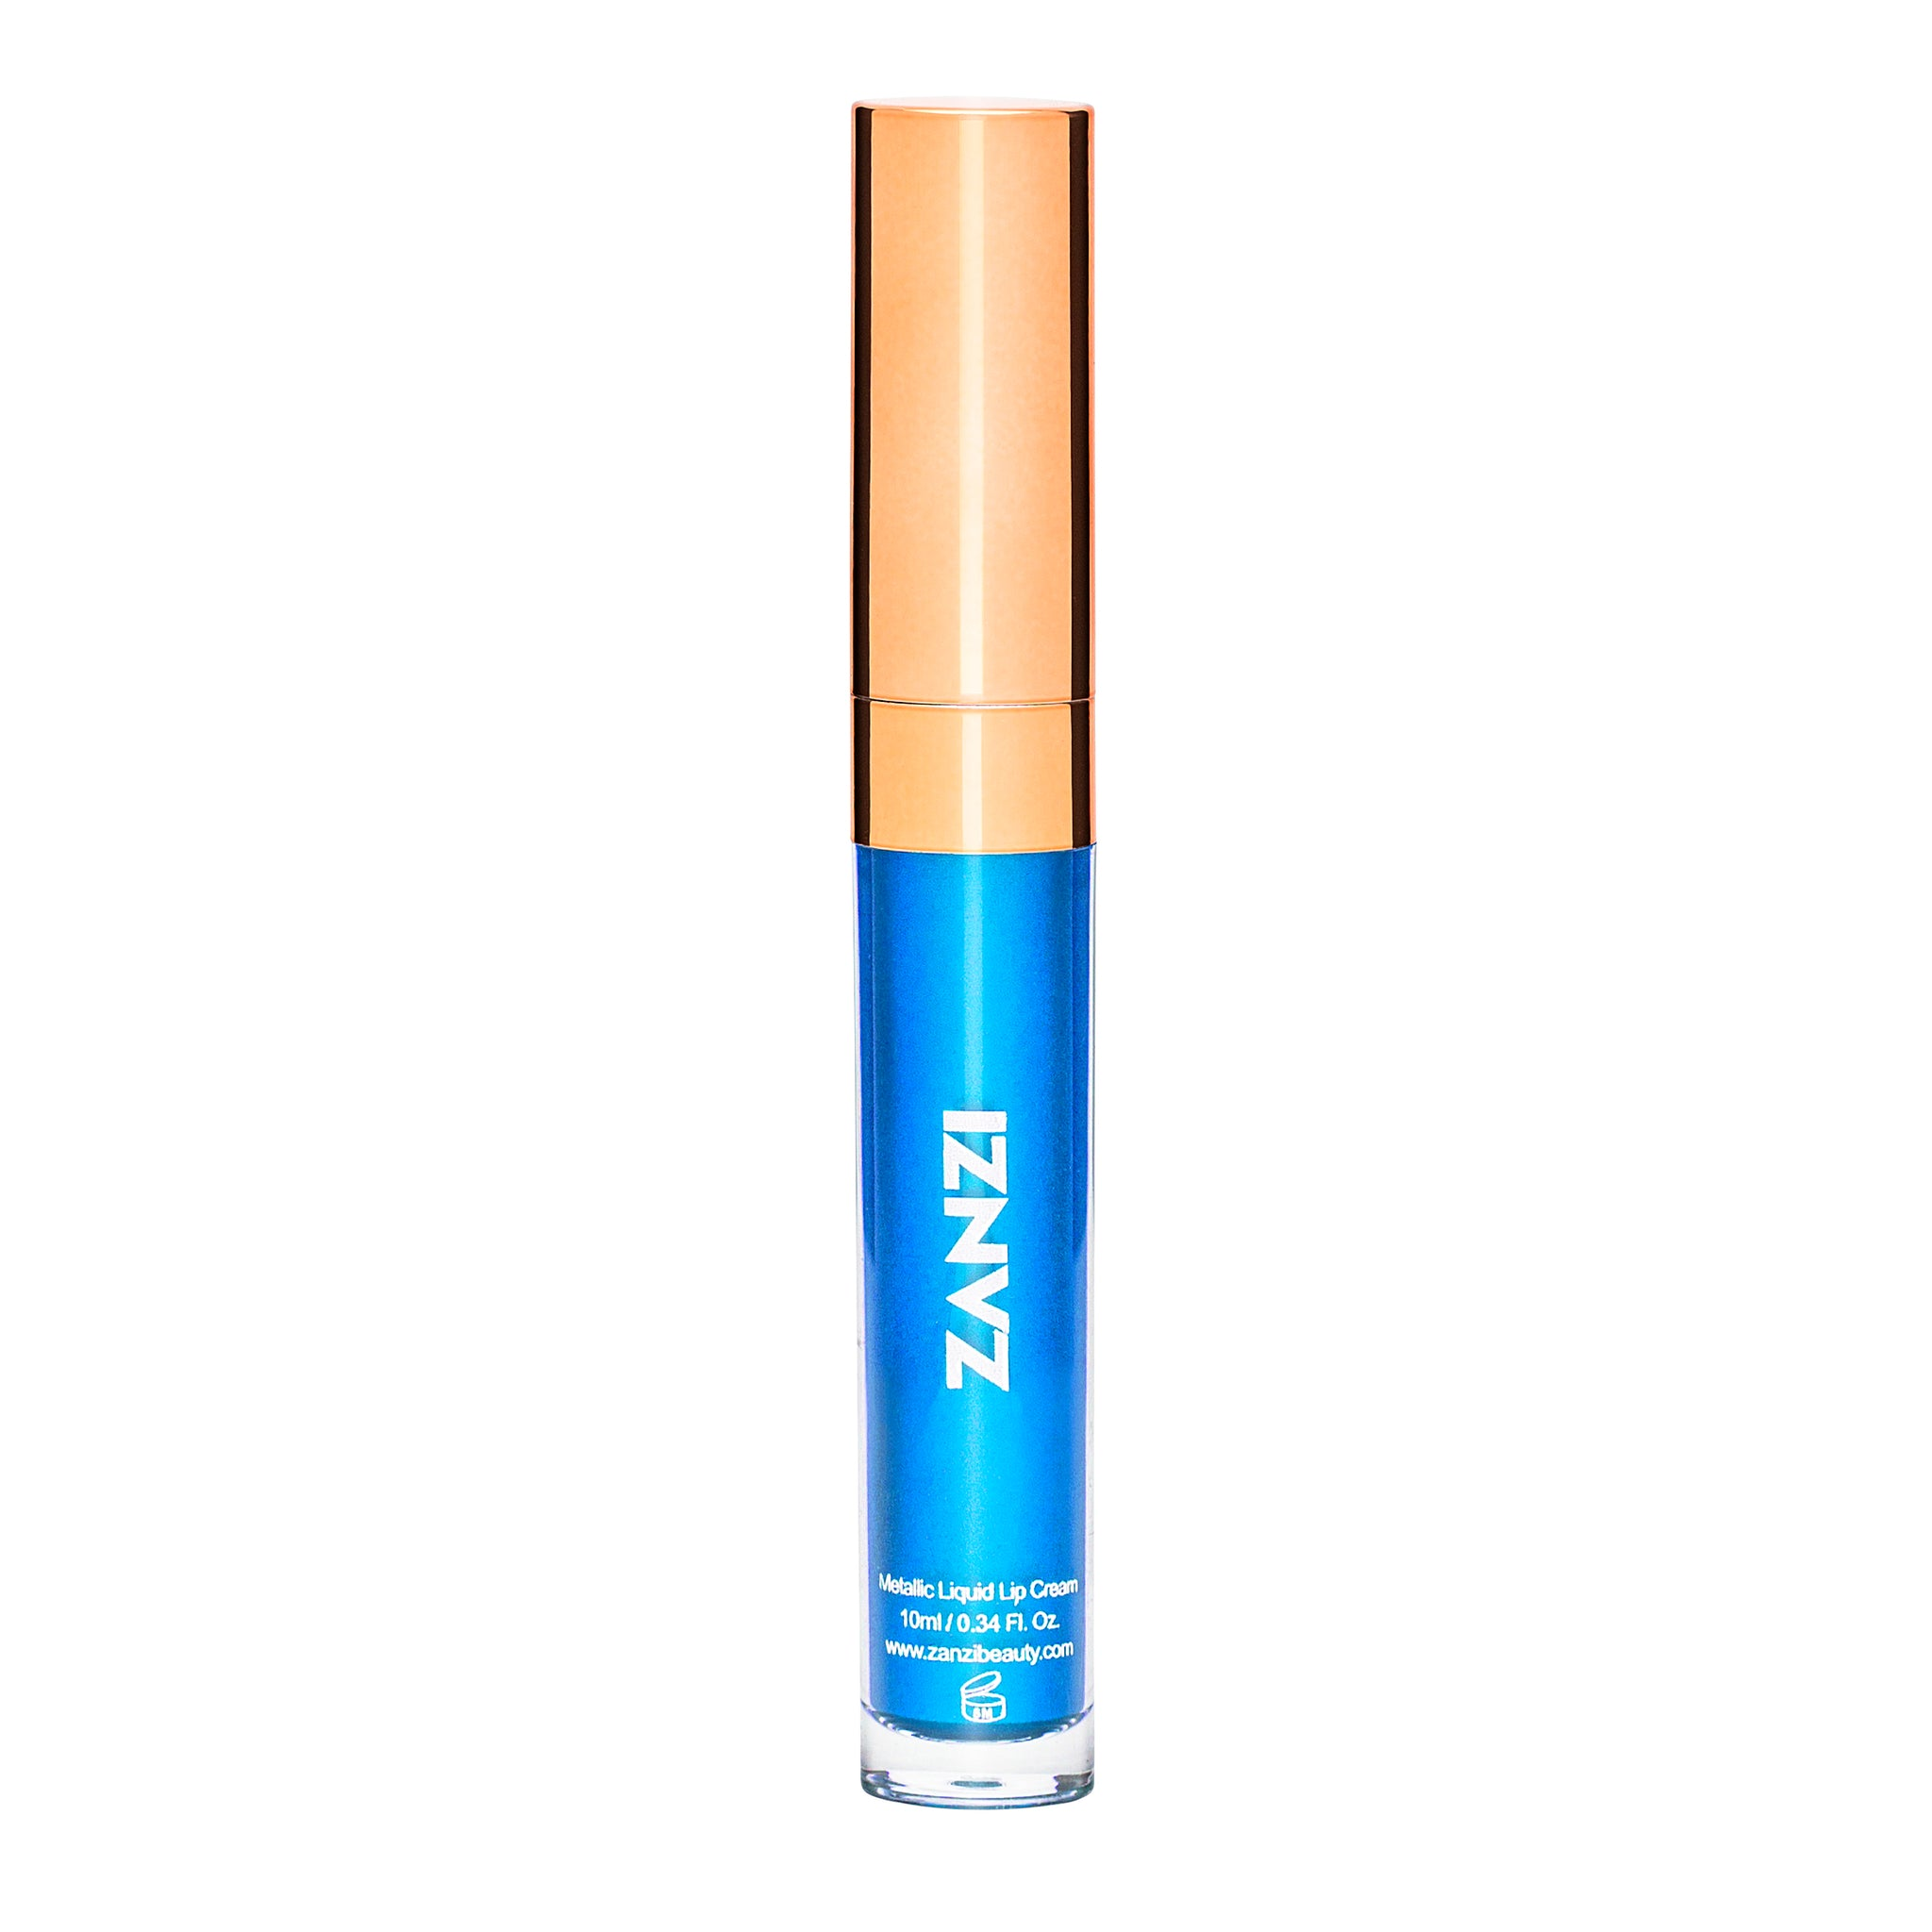 Electra Metallic Liquid Lip Cream - 10ml